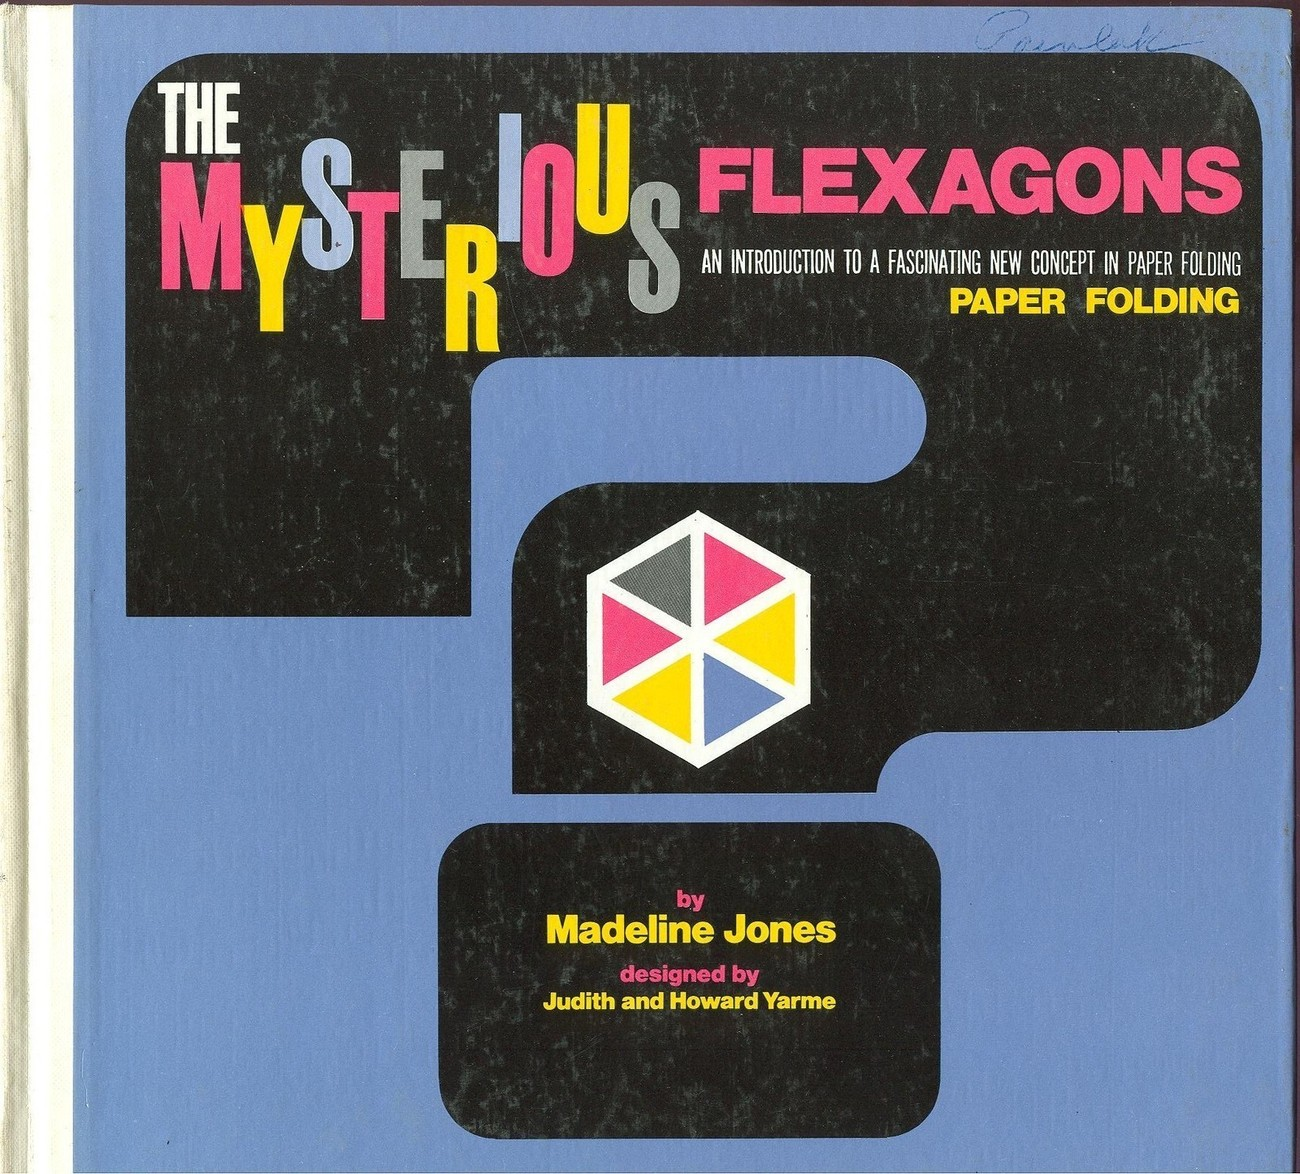 The Mysterious Flexagons Paper Folding Hardcover Book by Madeline Jones 1966;HTF